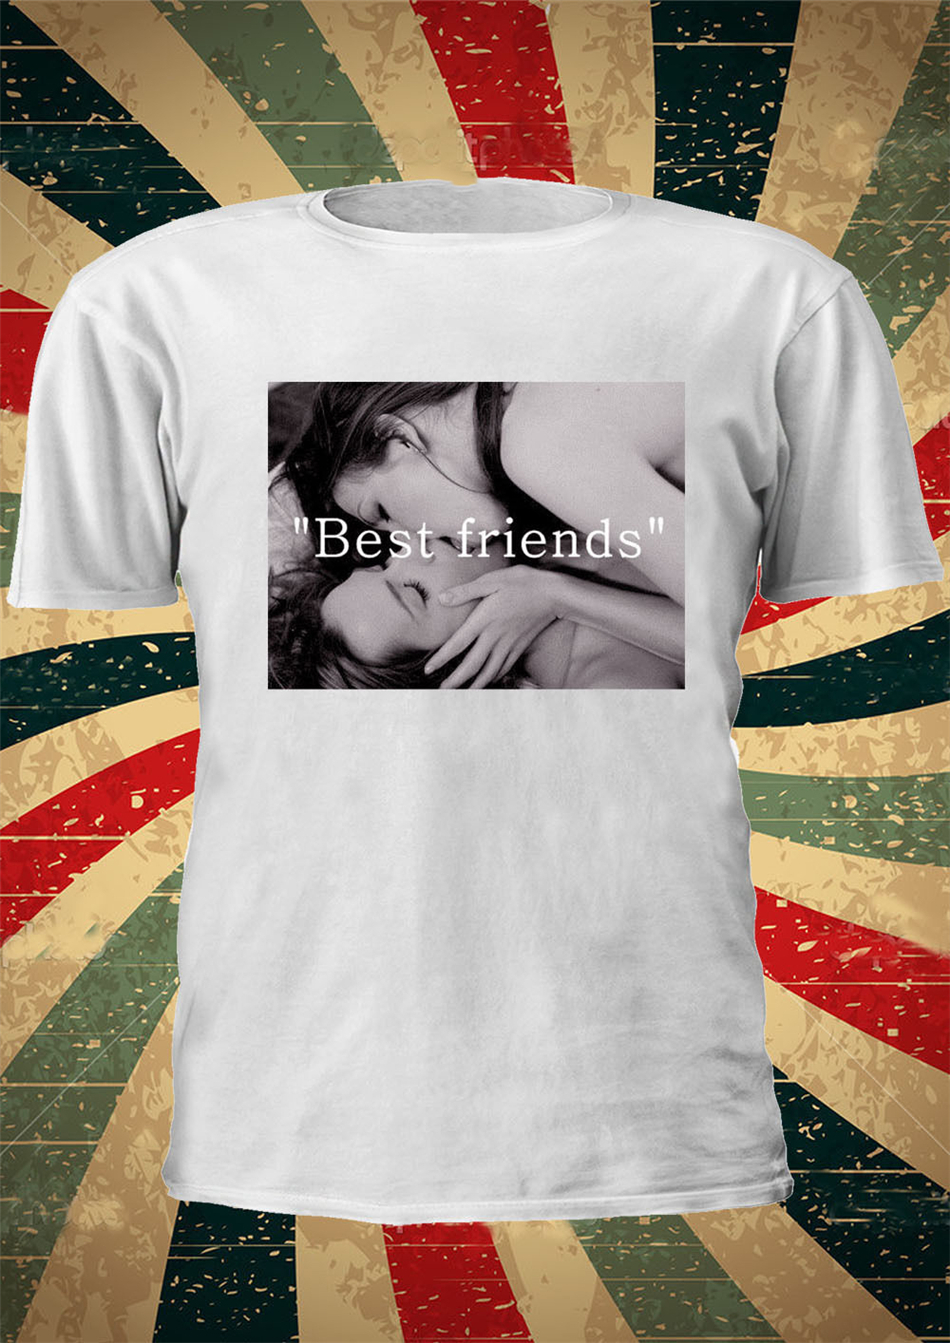 Best Friend Lesbian Kissing Love Tumblr Fashion T Shirt Men Women Unisex 1119 Clothing Funny male Casual Style Tee Shirt image